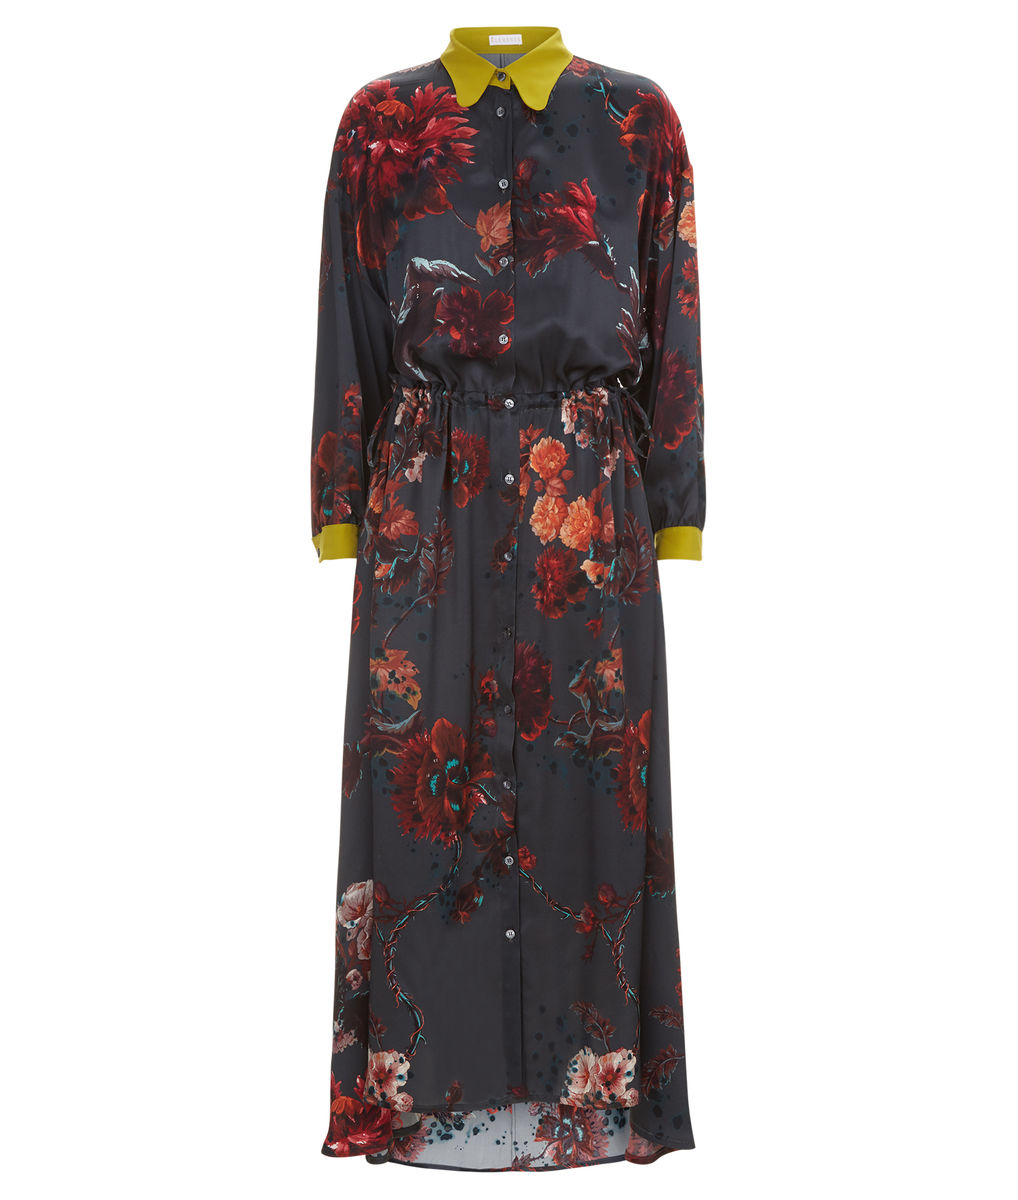 Escapist Dress in Gothic Floral print (petrol) - product images  of